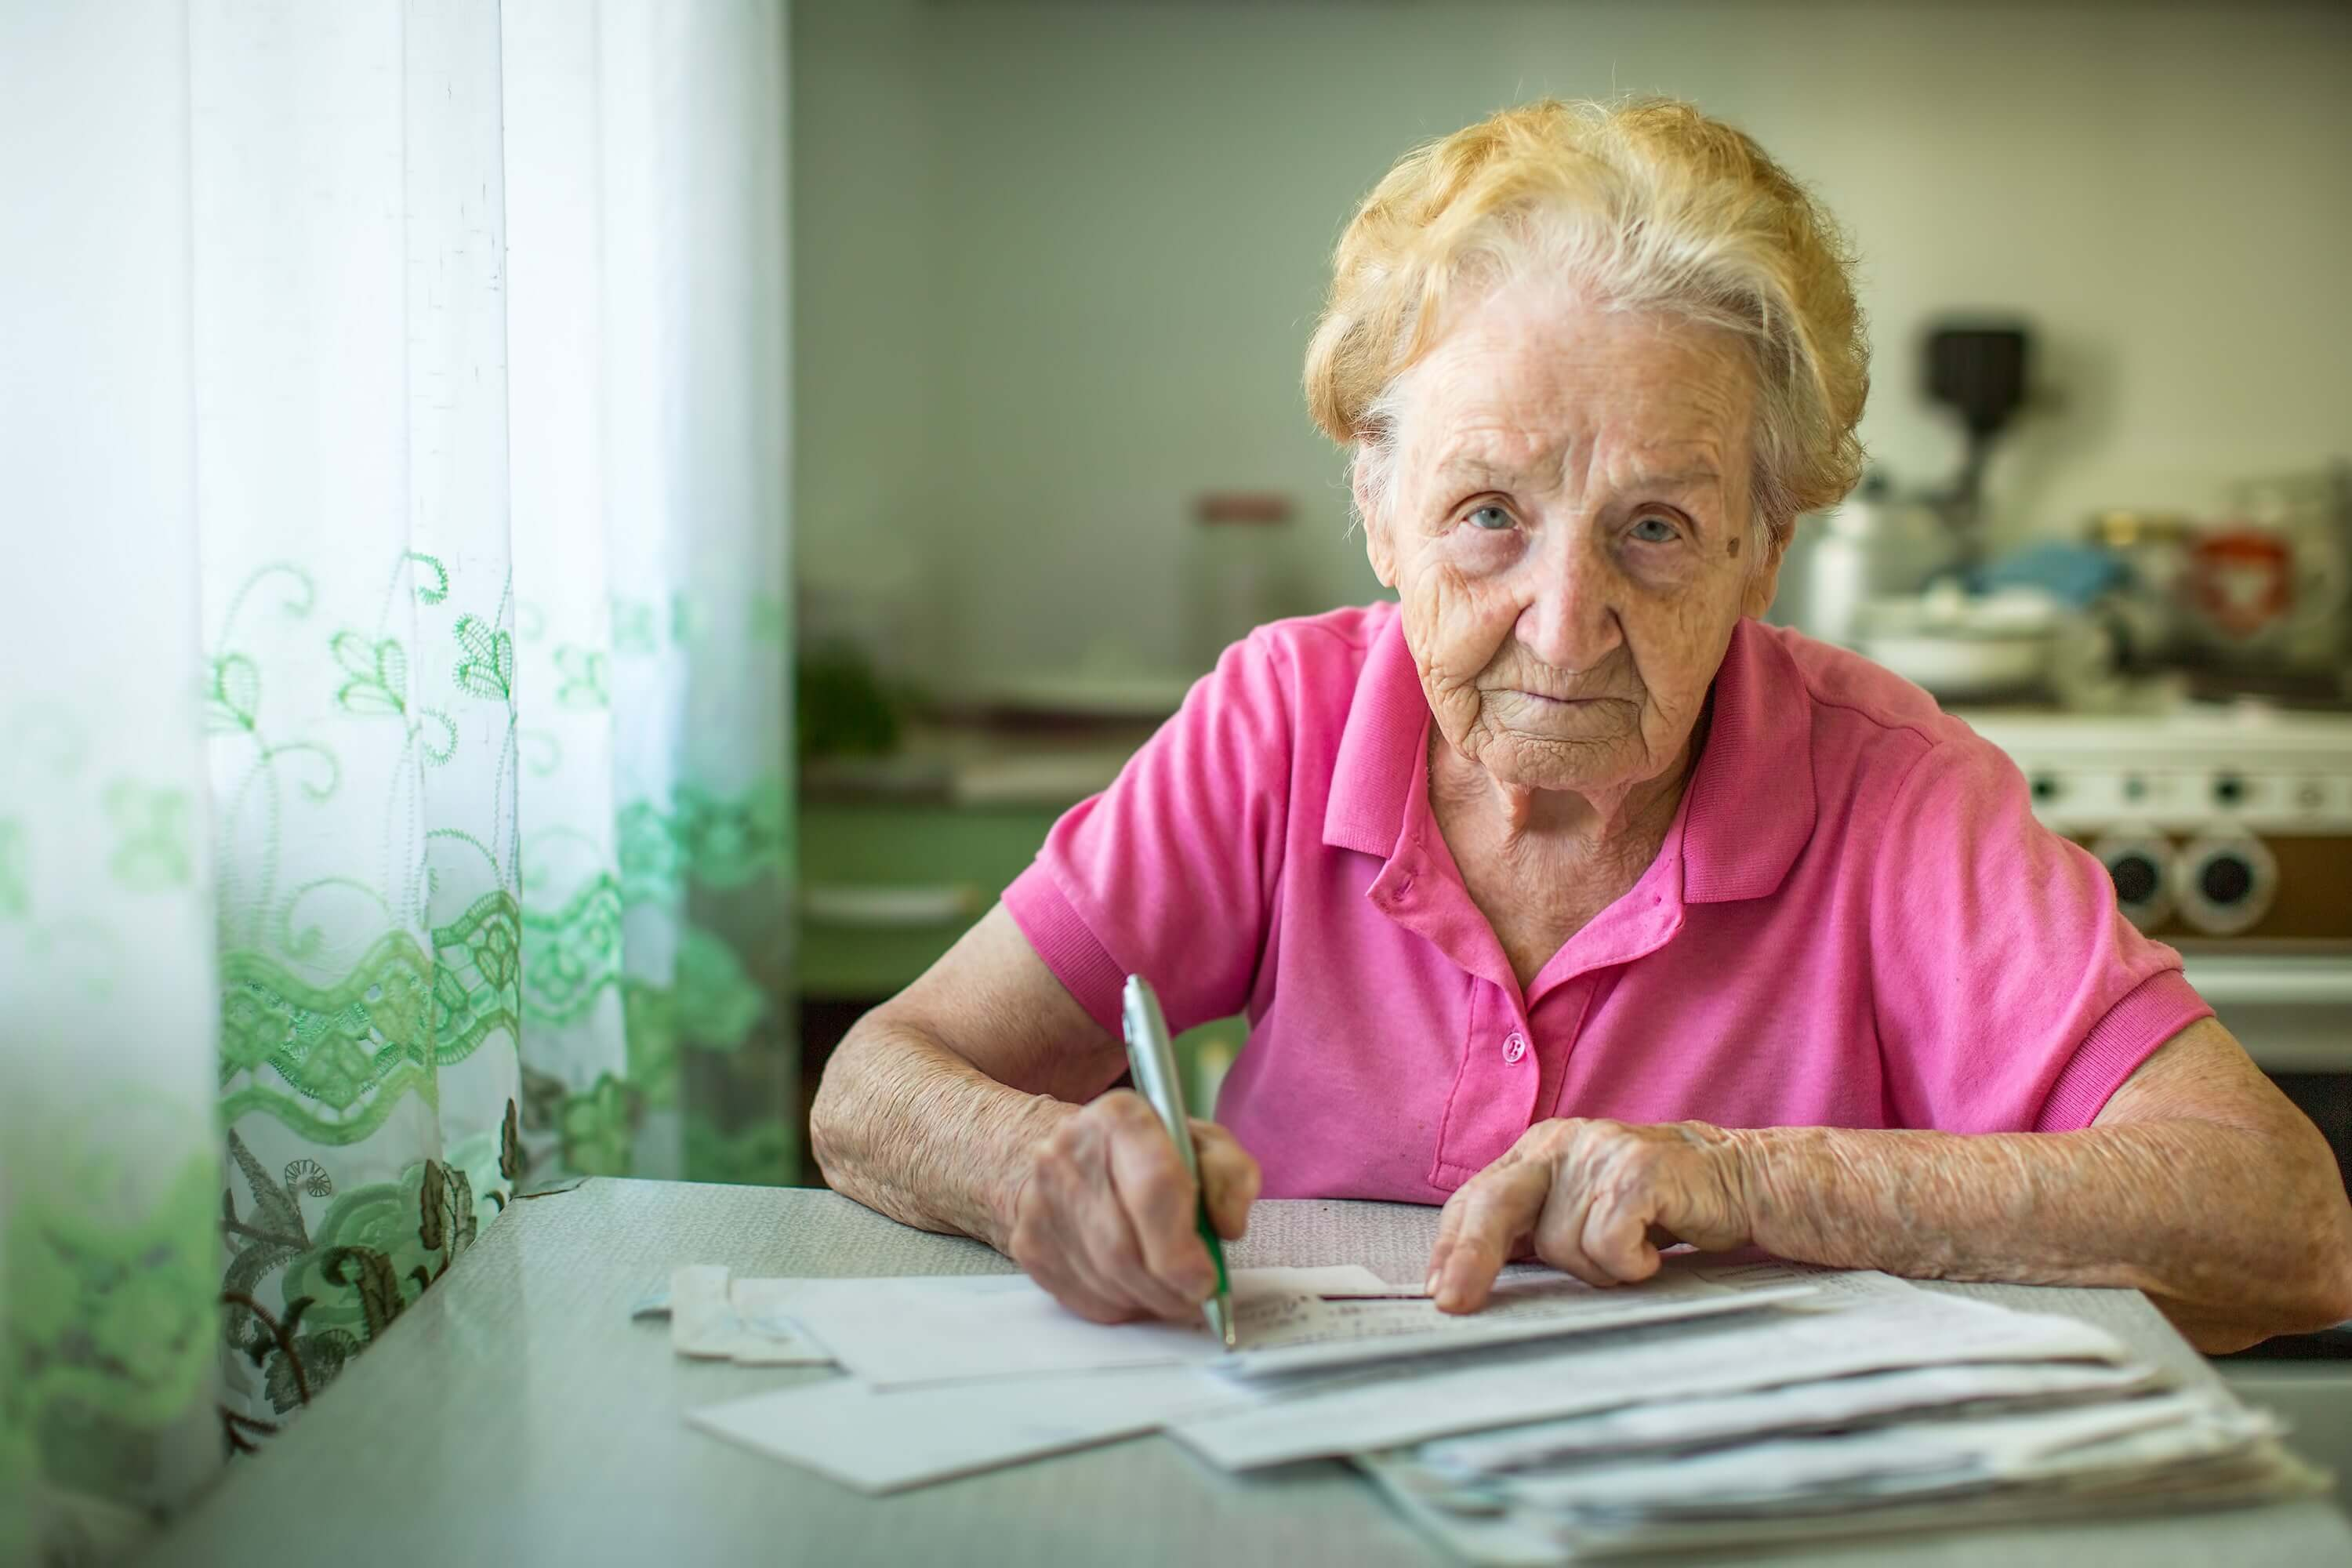 Elderly lady sitting at her dining table paying her bills